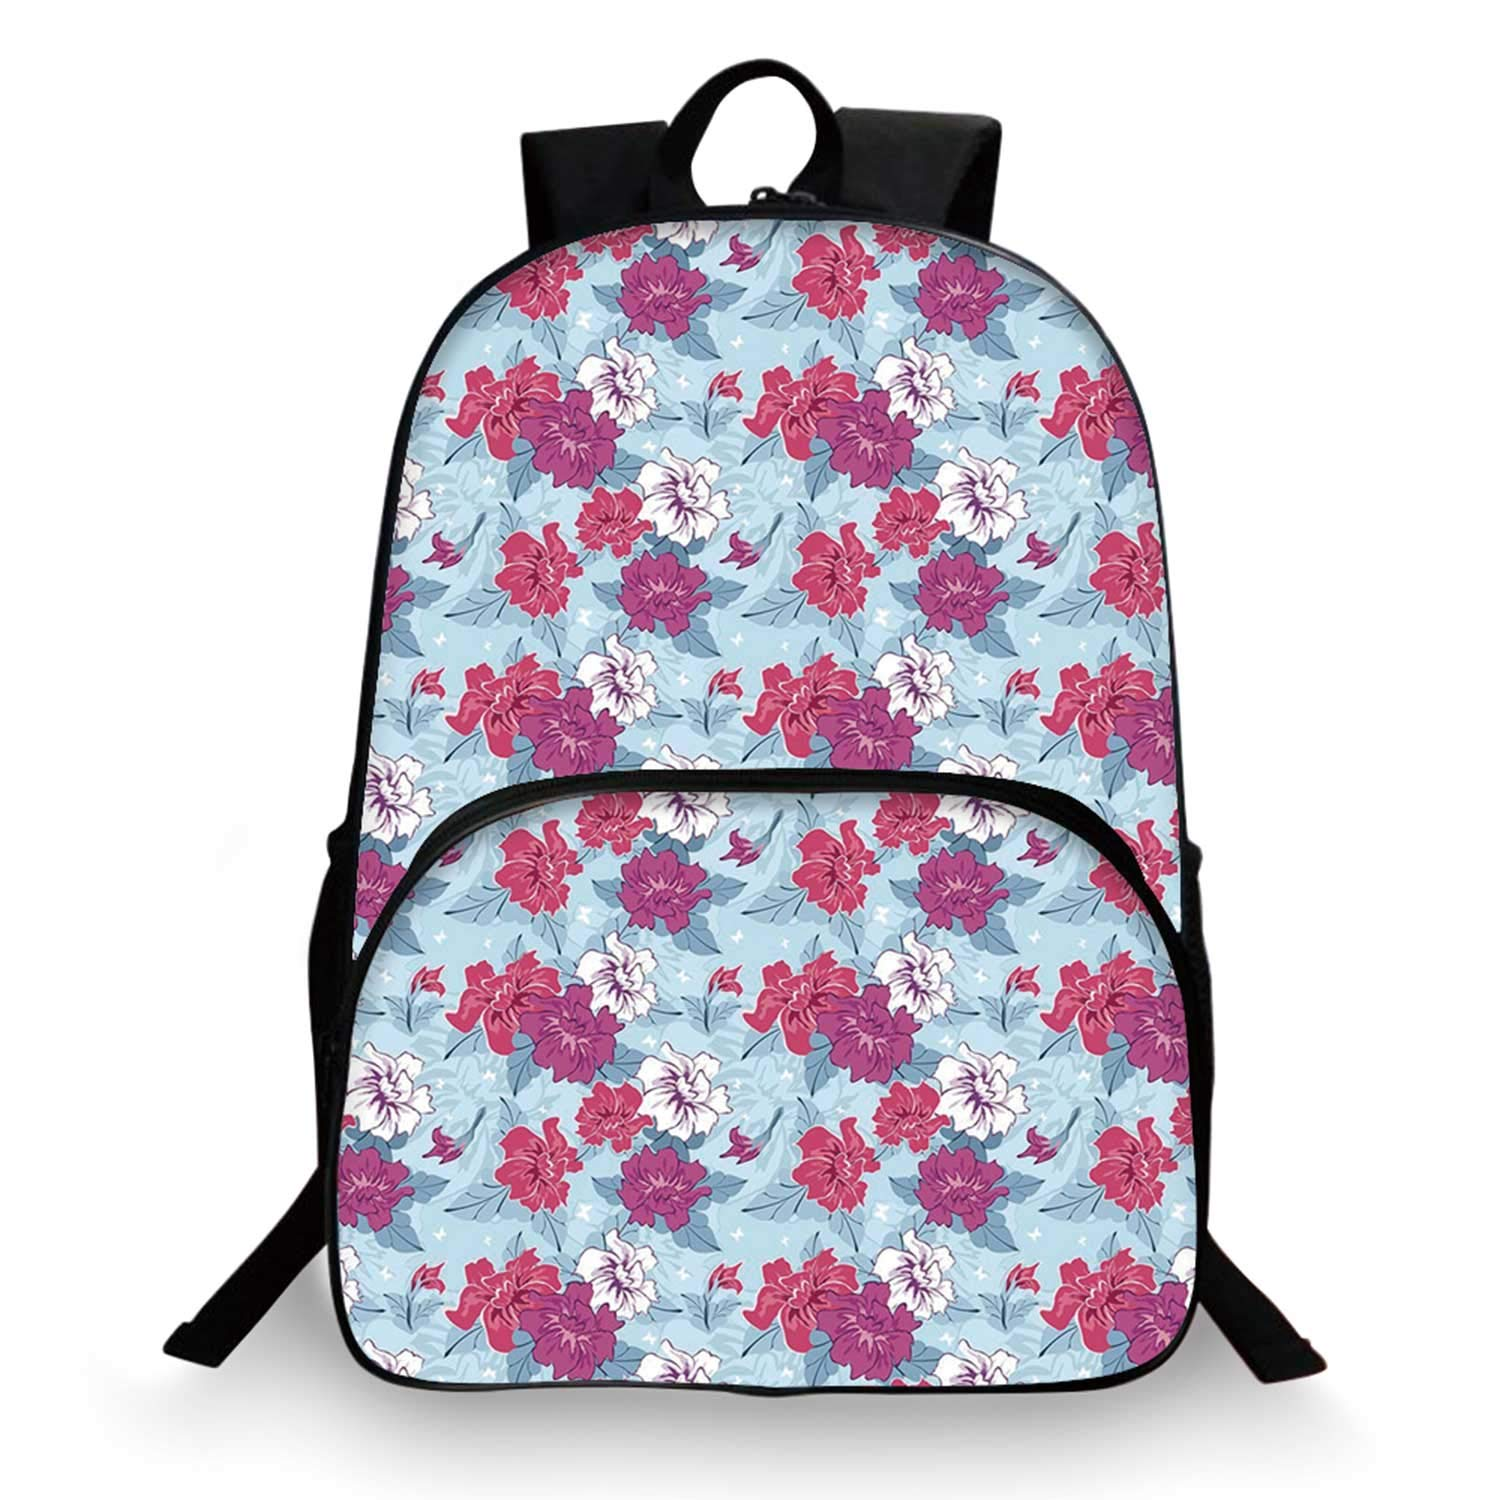 Floral Various Schoolbag,Damask Flourish Lively Blooms and Leaves with Little White Butterflies Decorative for student,11''Lx6''Wx15''H by C COABALLA